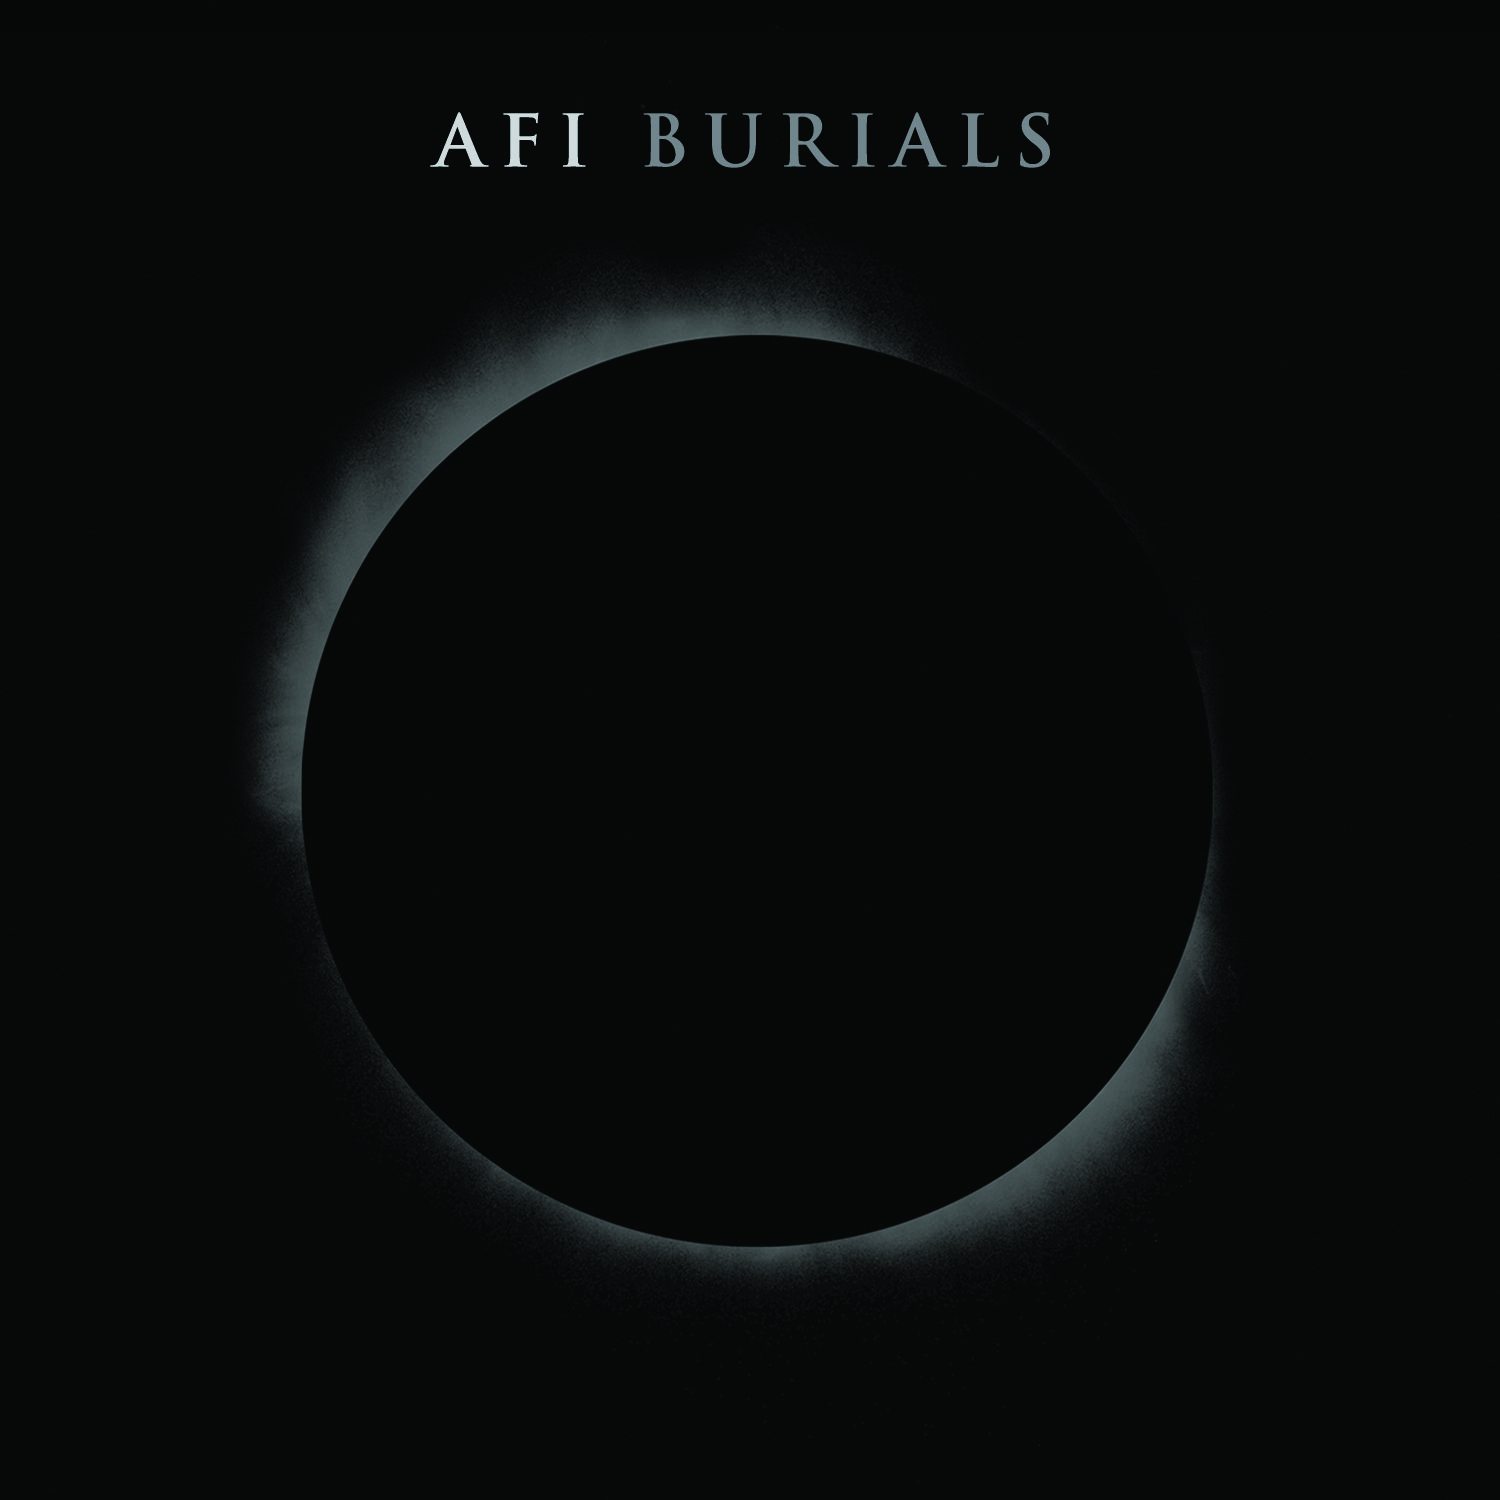 burials-2013-cms-source